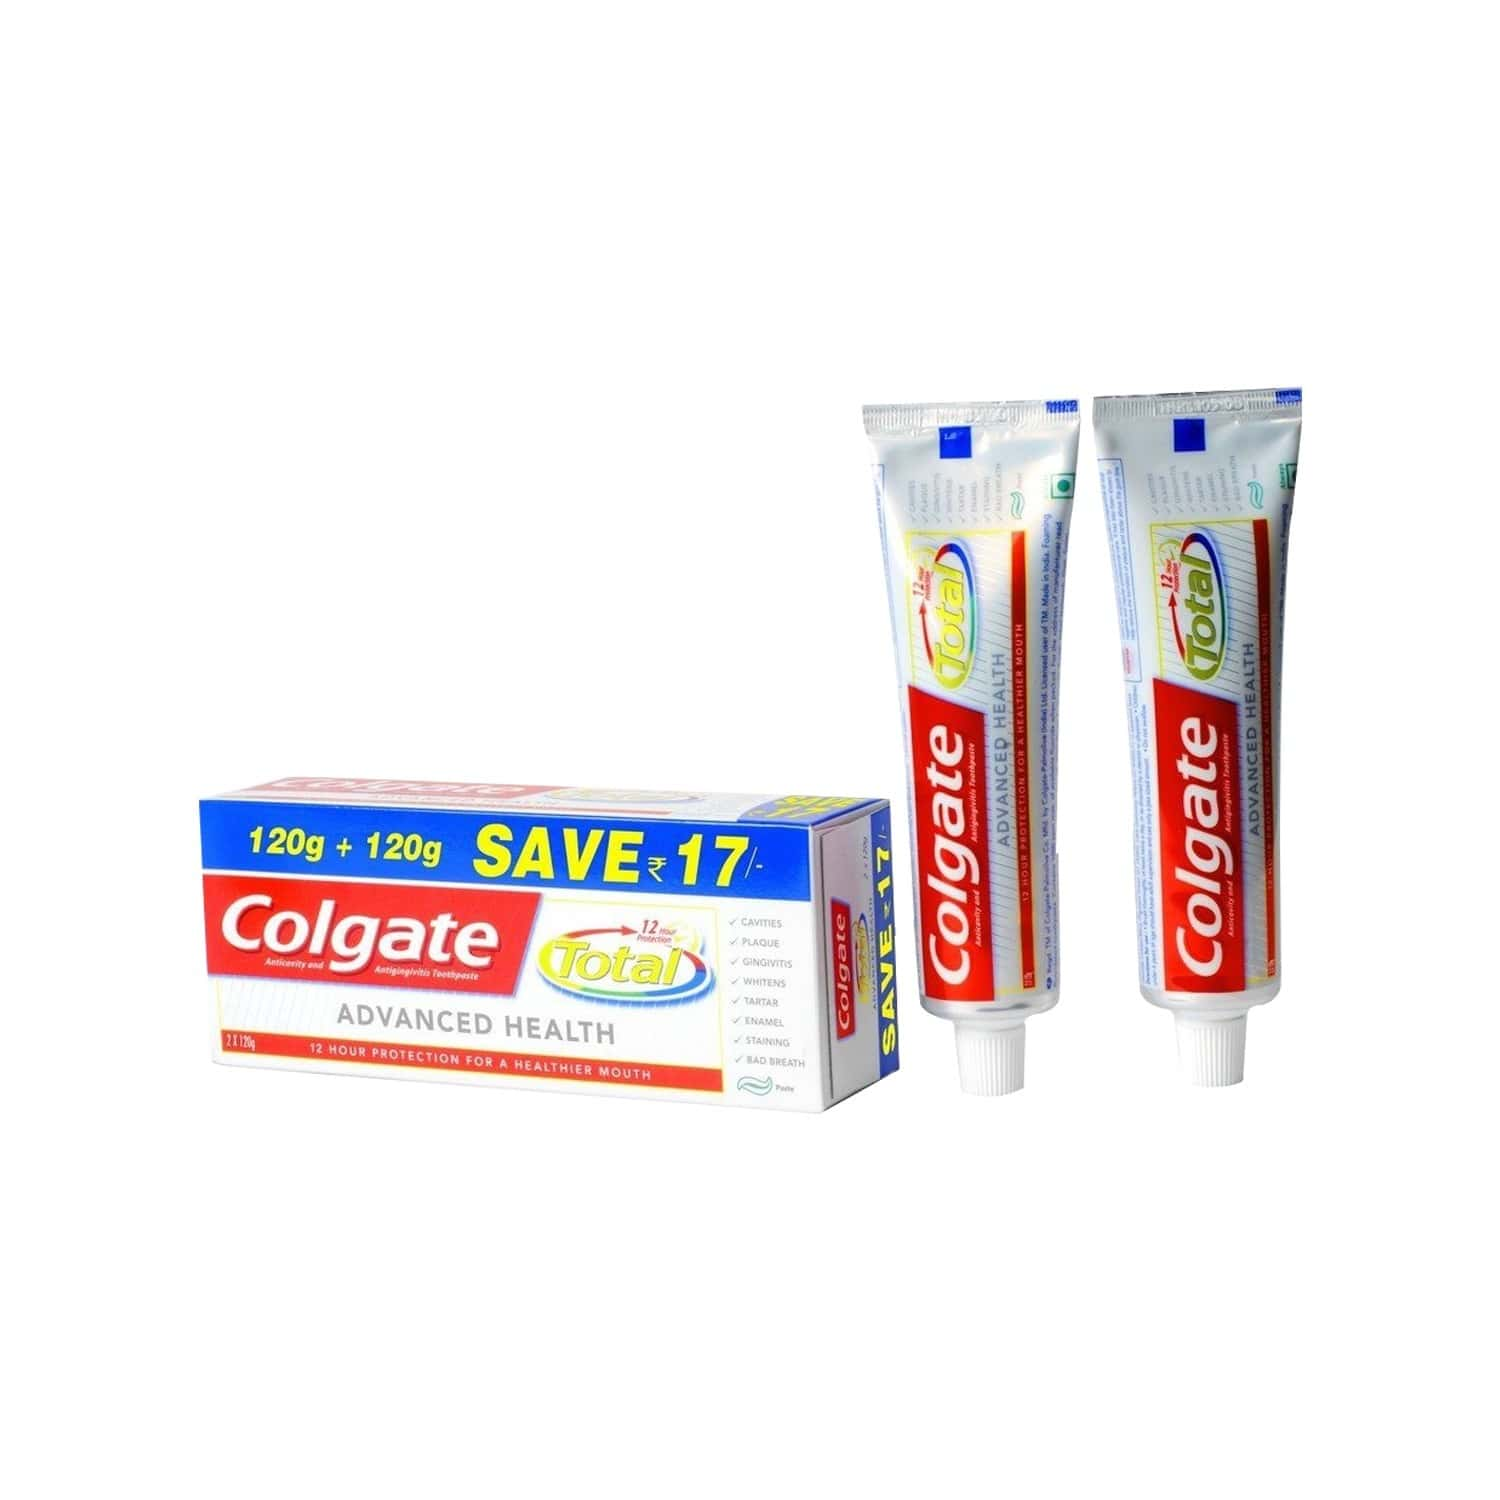 Colgate Toothpaste-total Advance Health - 240 G - Saver Pack